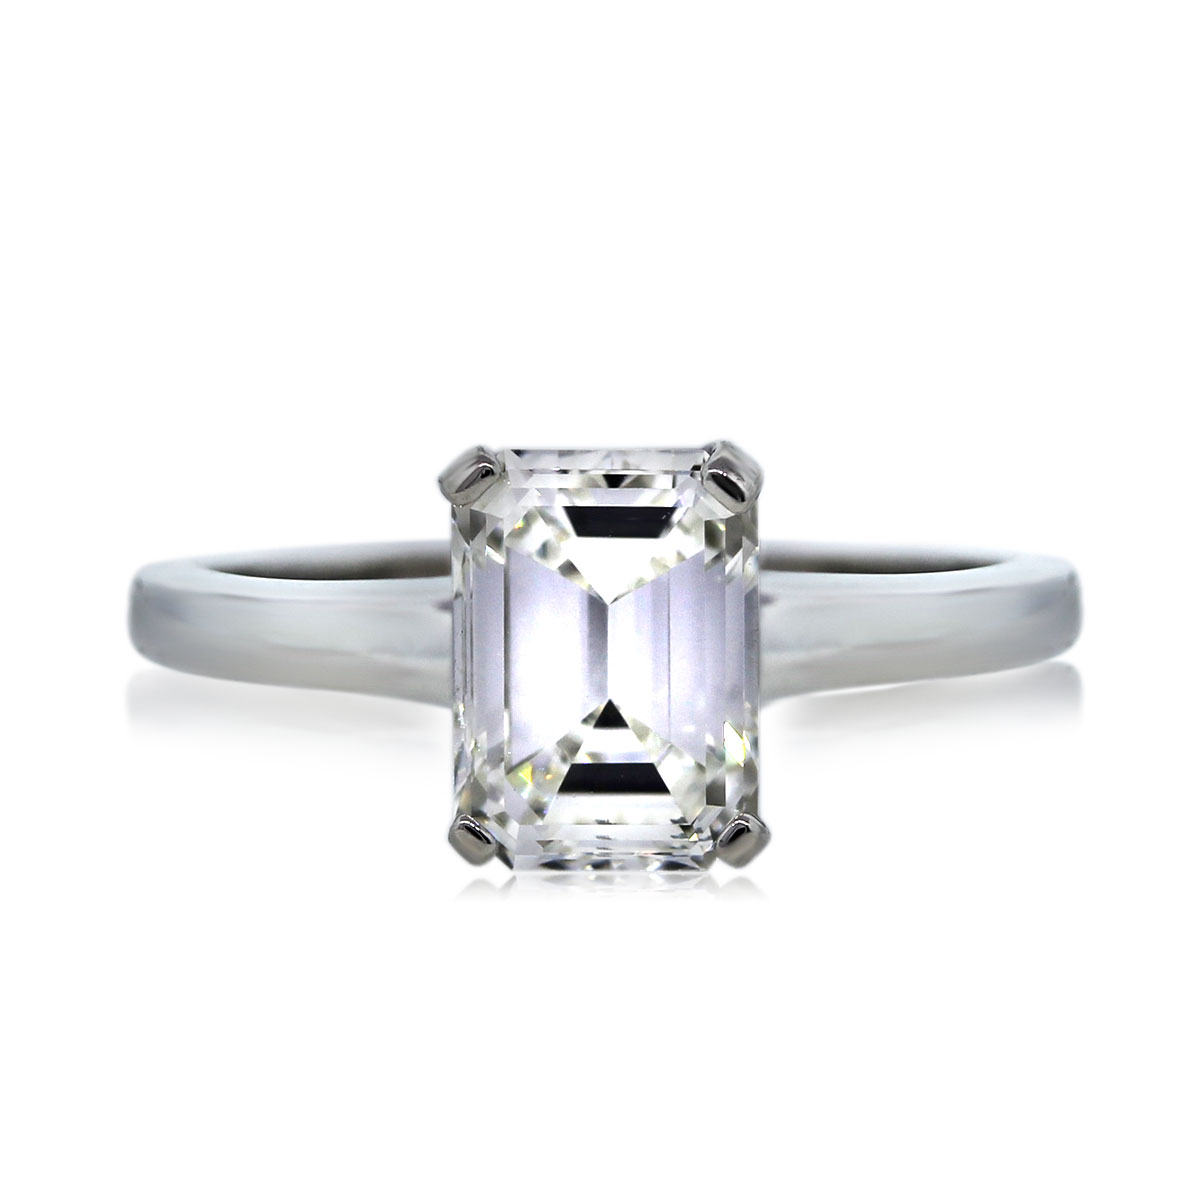 You Are Viewing This Gorgeous 118ct Emerald Cut Engagement Ring!